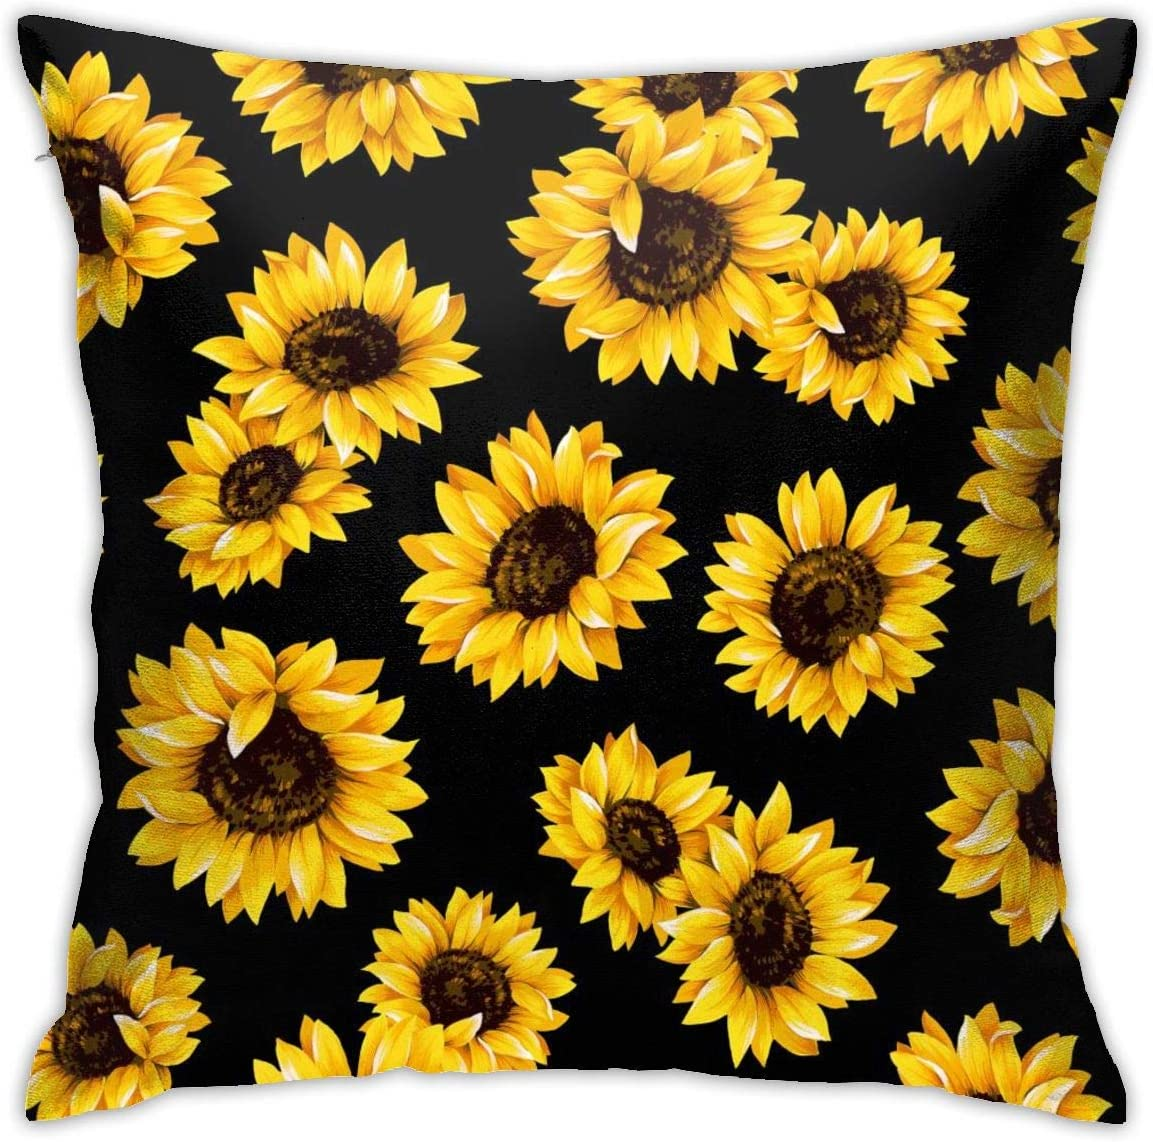 Bargburm Yellow Sunflower Throw Pillows Covers Cushion Case Cotton Home Decor for Sleeping Couch Sofa 18 X 18 Inch